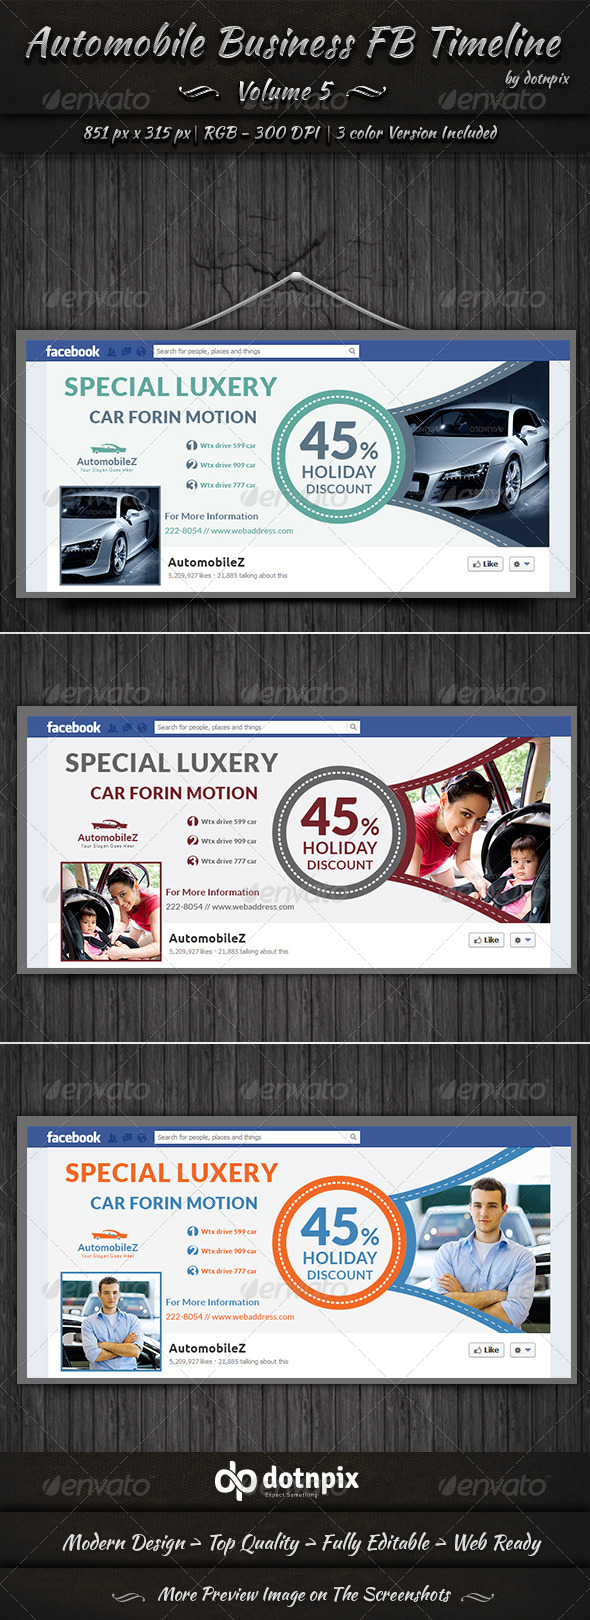 GraphicRiver Automobile Business FB Timeline Volume 5 7721408